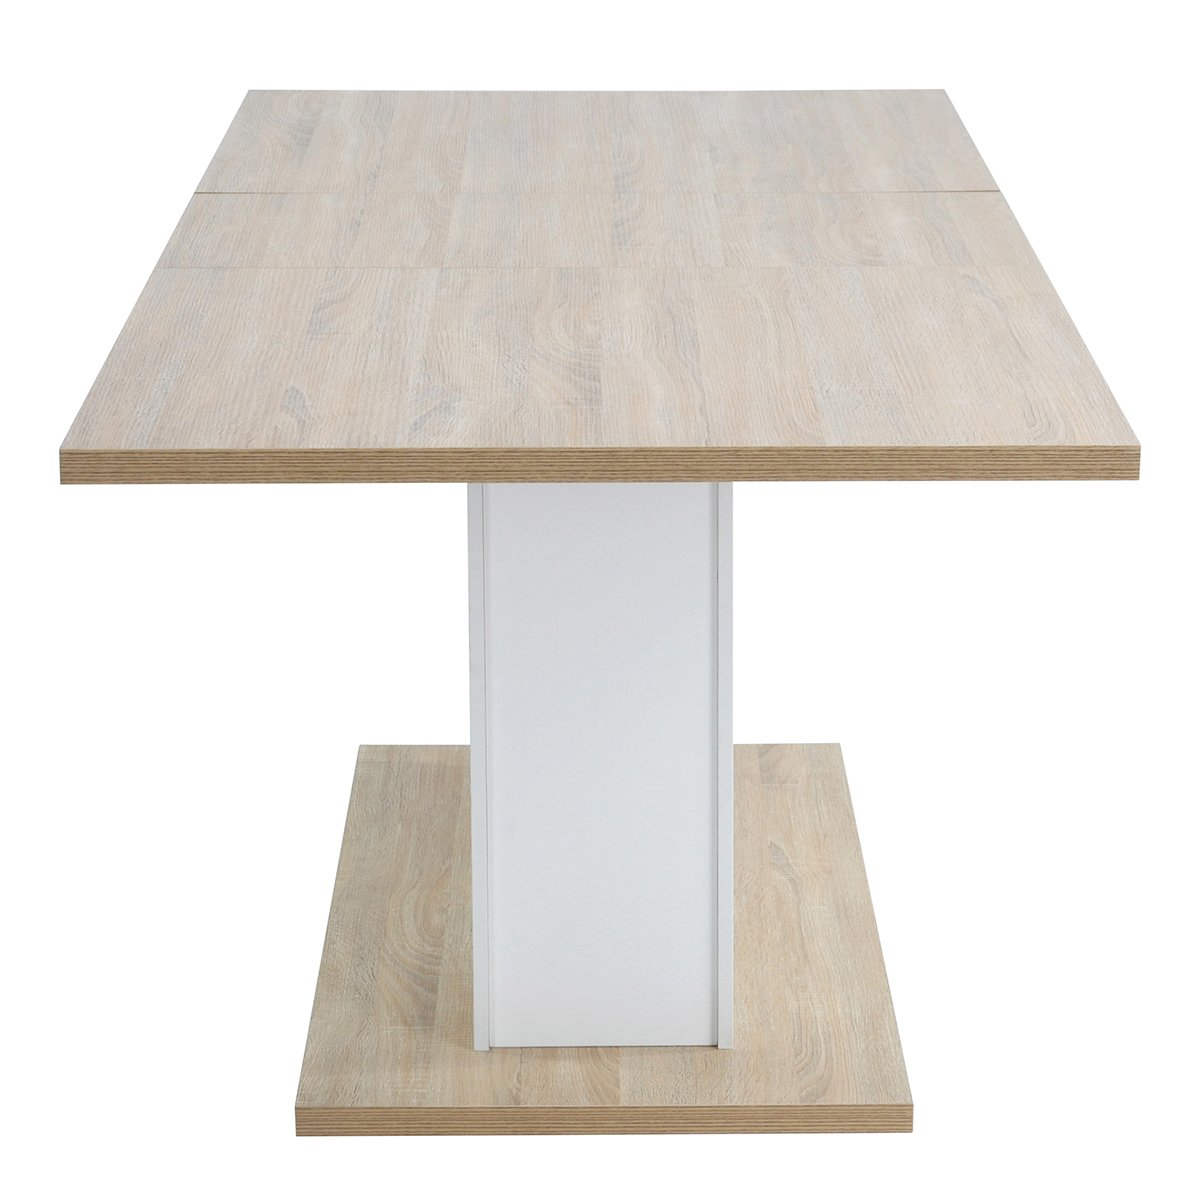 Extendable Rectangular Dining Table, Mltifunction Space Saving Wood Table (Extendable Beech Table) by HOMY CASA (Image #7)